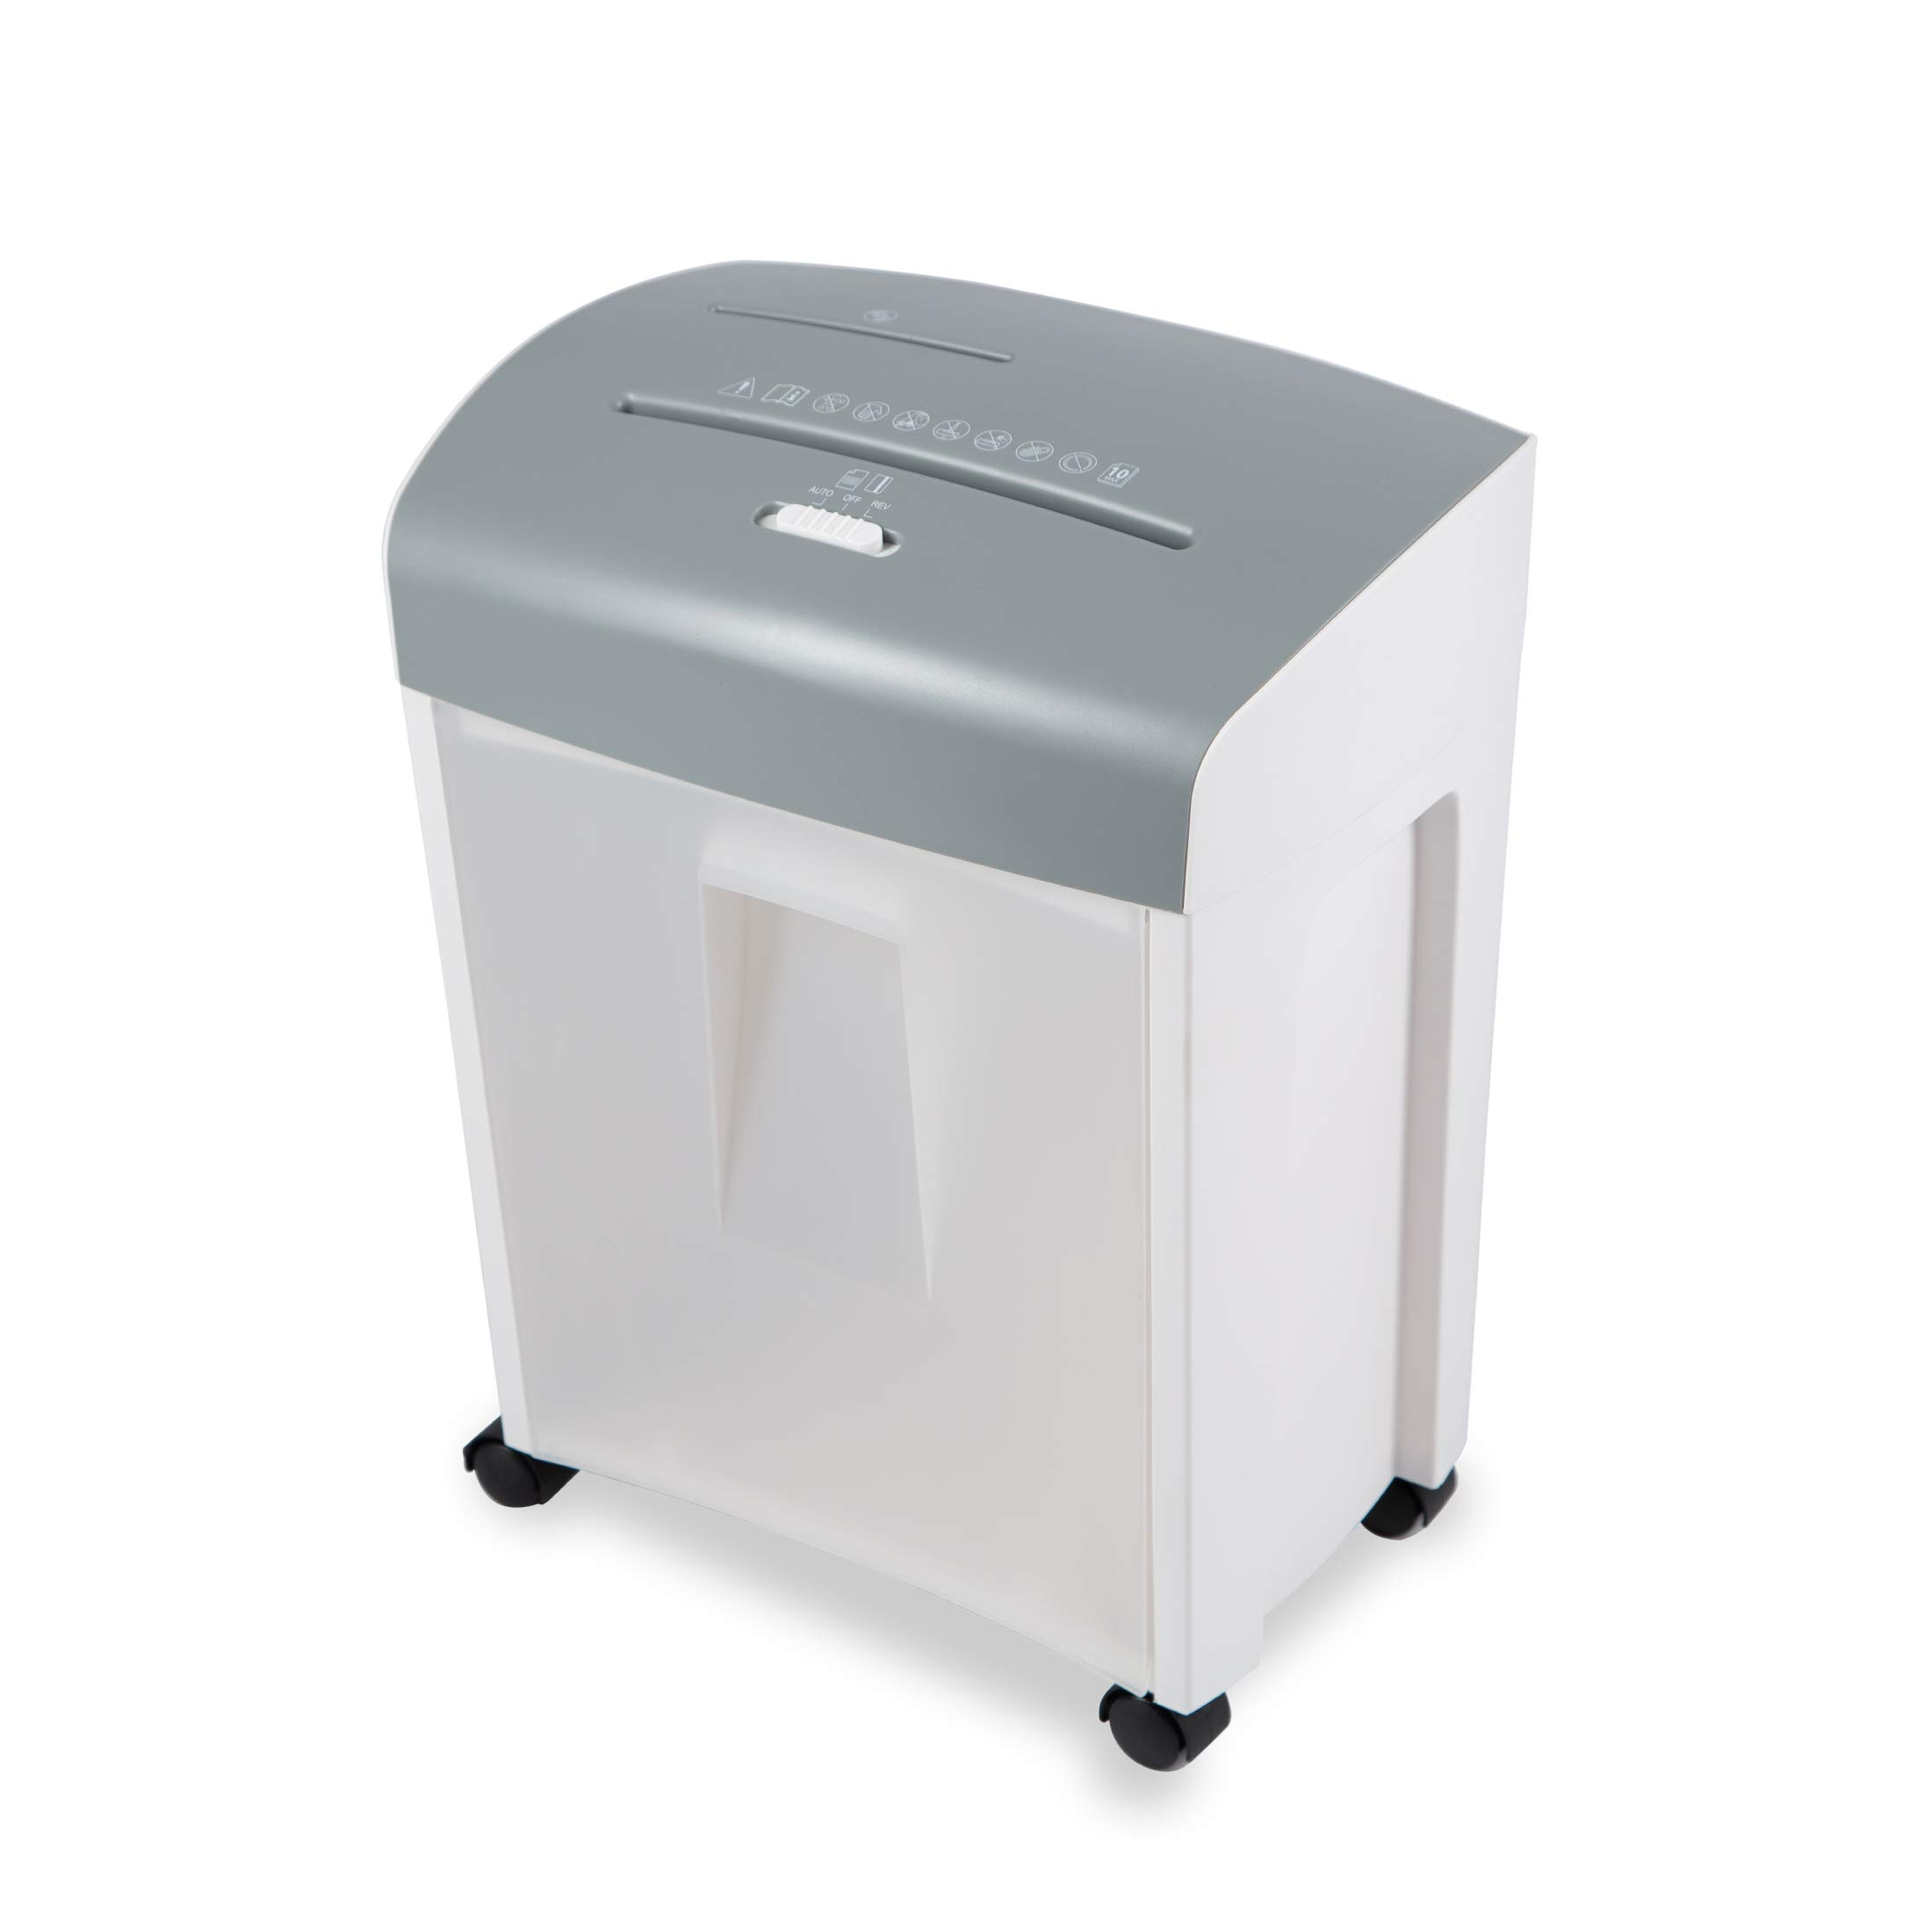 Zoomyo ZS-10E Document Shredder with pullout Basket, Security Class P4, Paper Shredder for up to 10 Sheets of DIN A4 Paper at Once, Also for CDs, DVDs and Credit Cards, Home Office Shredder, White by zoomyo